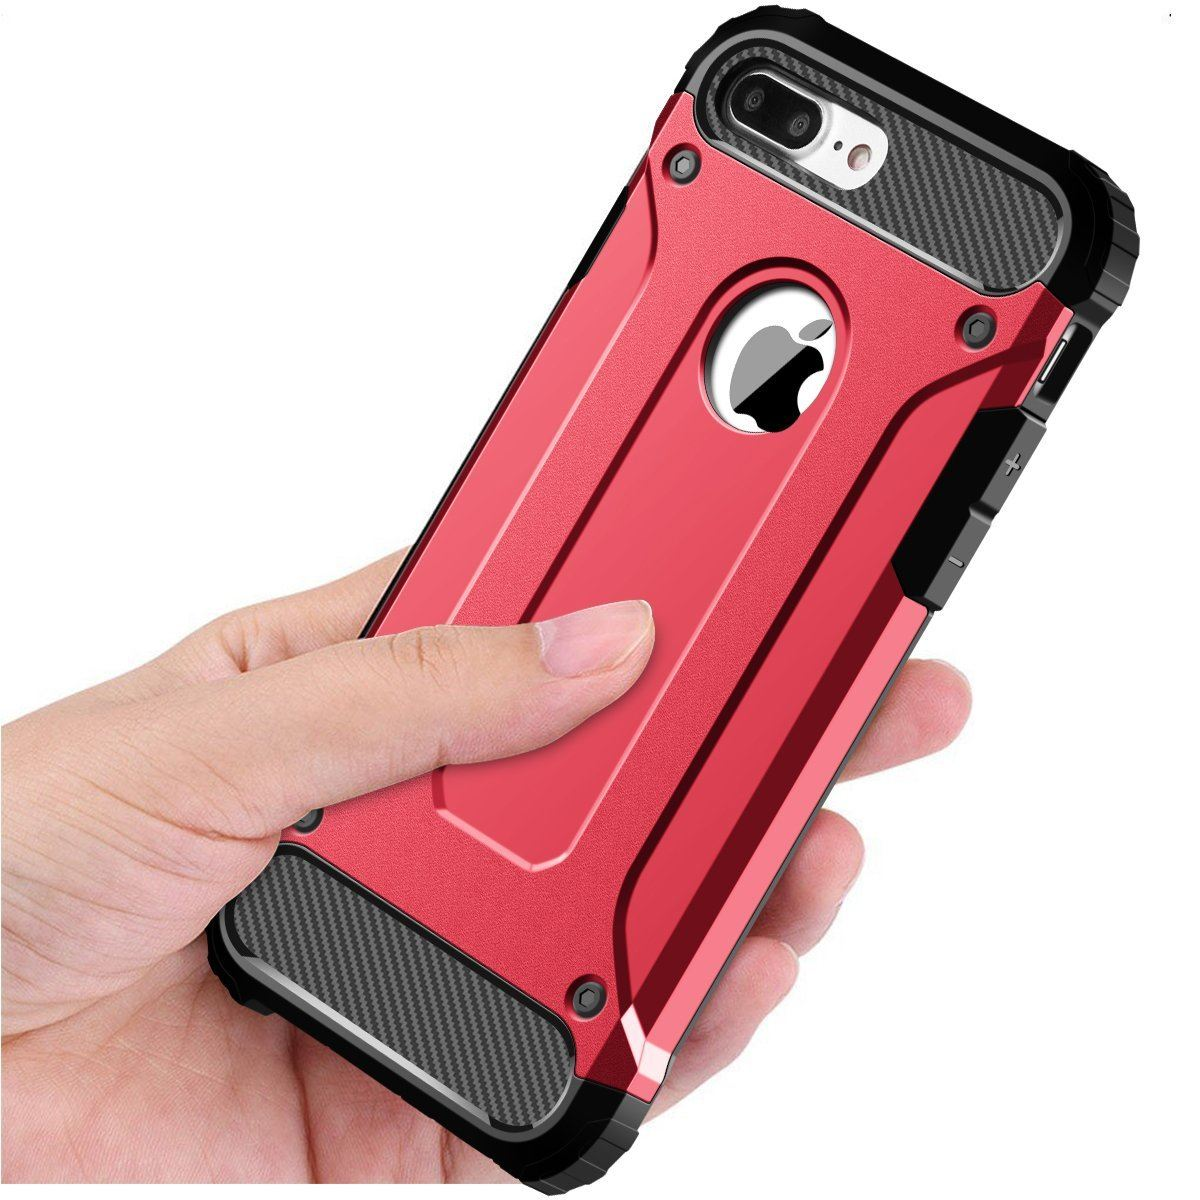 Hybrid-Armor-Shockproof-Rugged-Bumper-Case-For-Apple-iPhone-10-X-8-7-Plus-6s-5s miniature 19